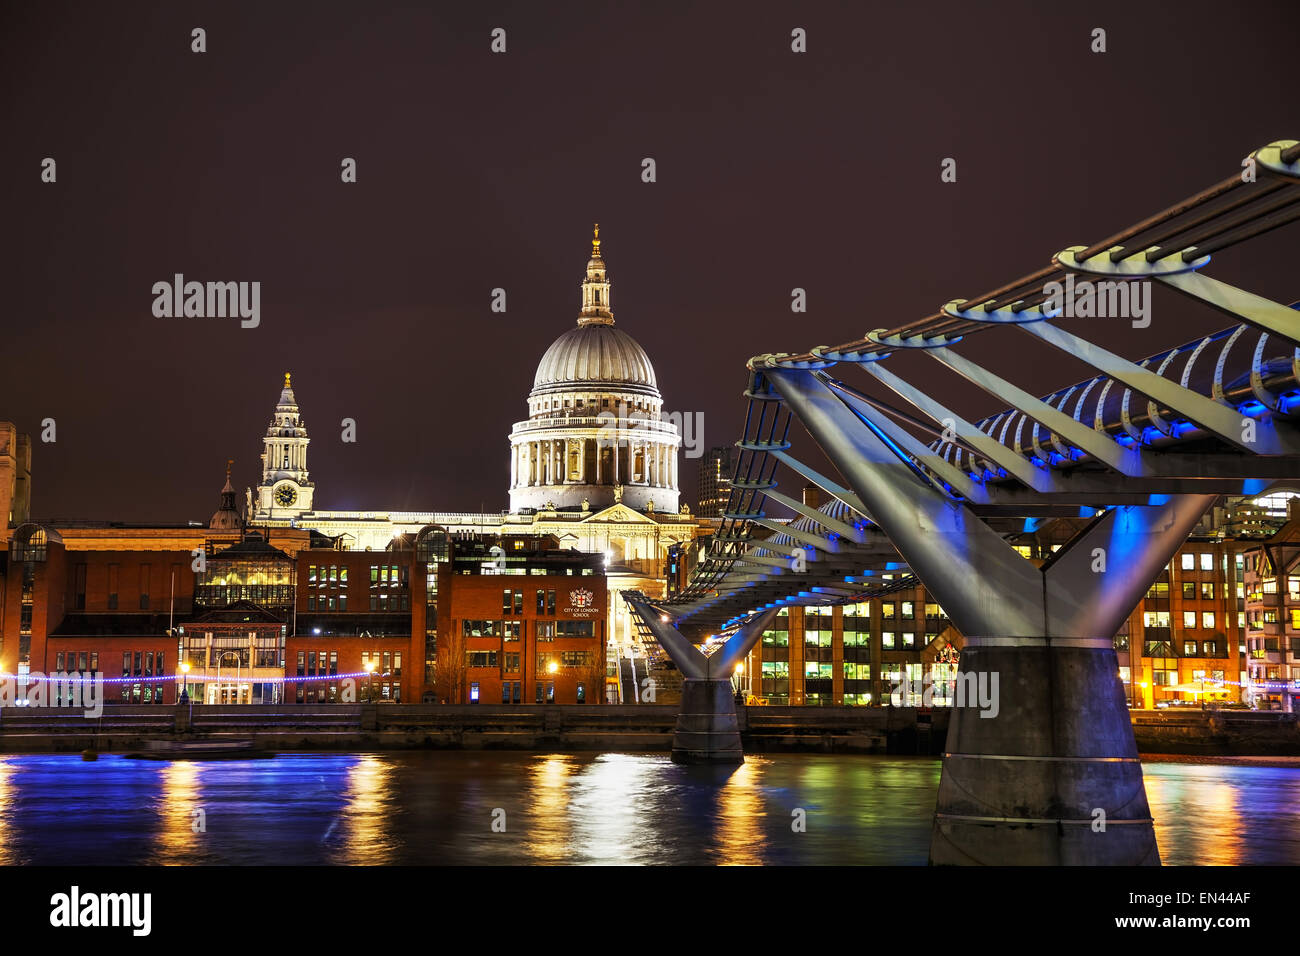 Saint Paul's cathedral in London, United Kingdom in the evening - Stock Image